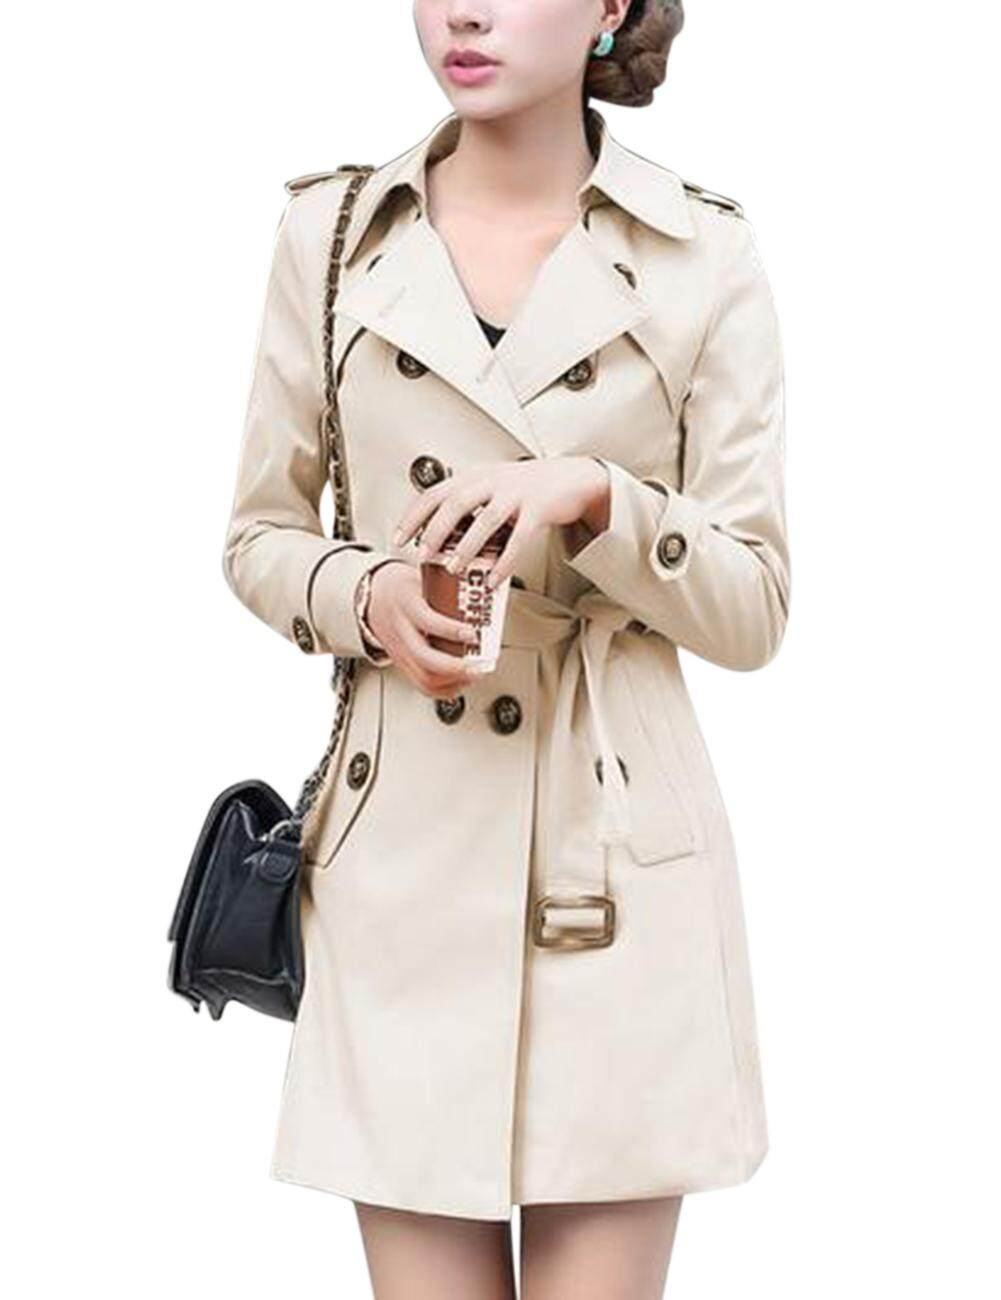 4bdb311edf567 Woman Lady s Windbreaker Coat Stylish Double-breasted Belt Slim Jacket  Large Size